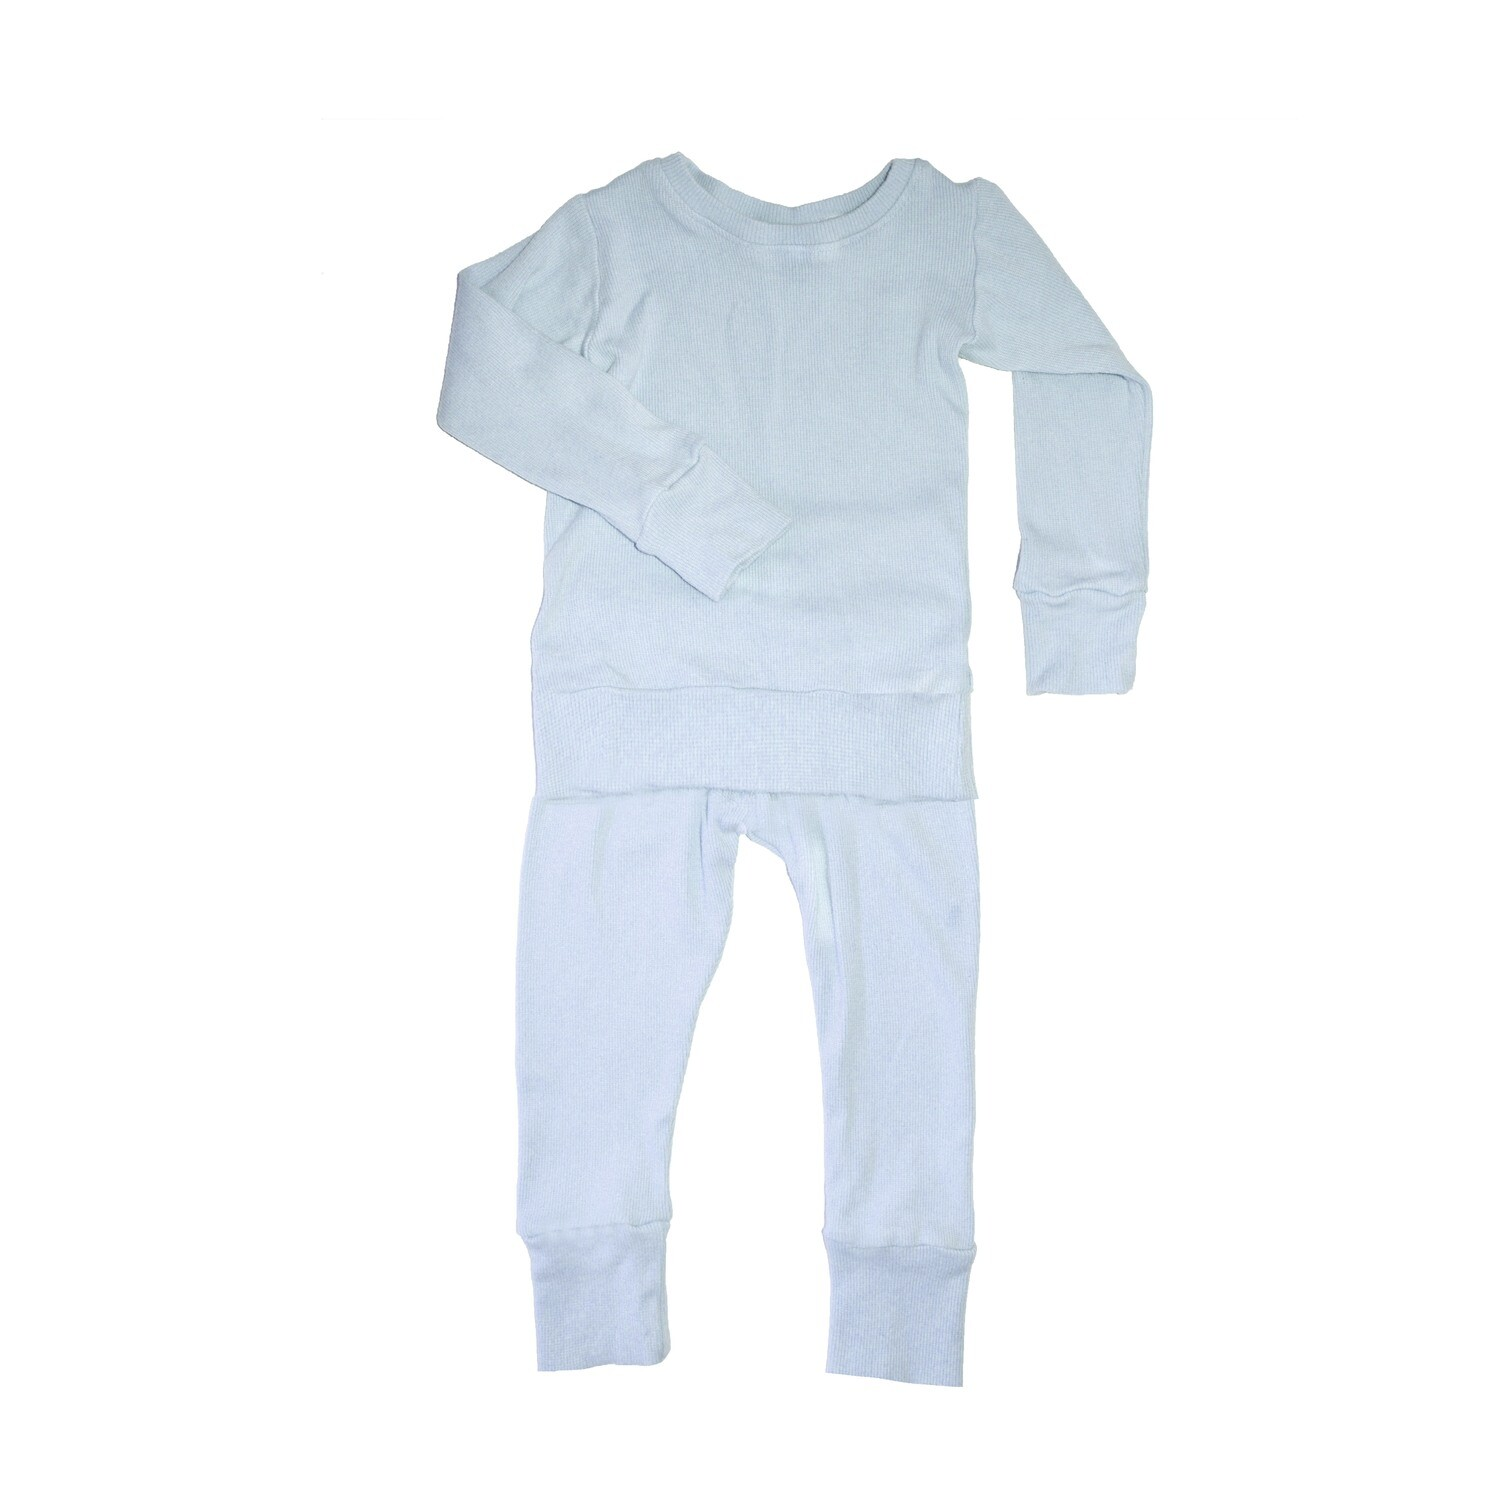 Little Sprout™ 2-Piece Grow with Me Footless Ribbed Knit Pyjamas | Stone